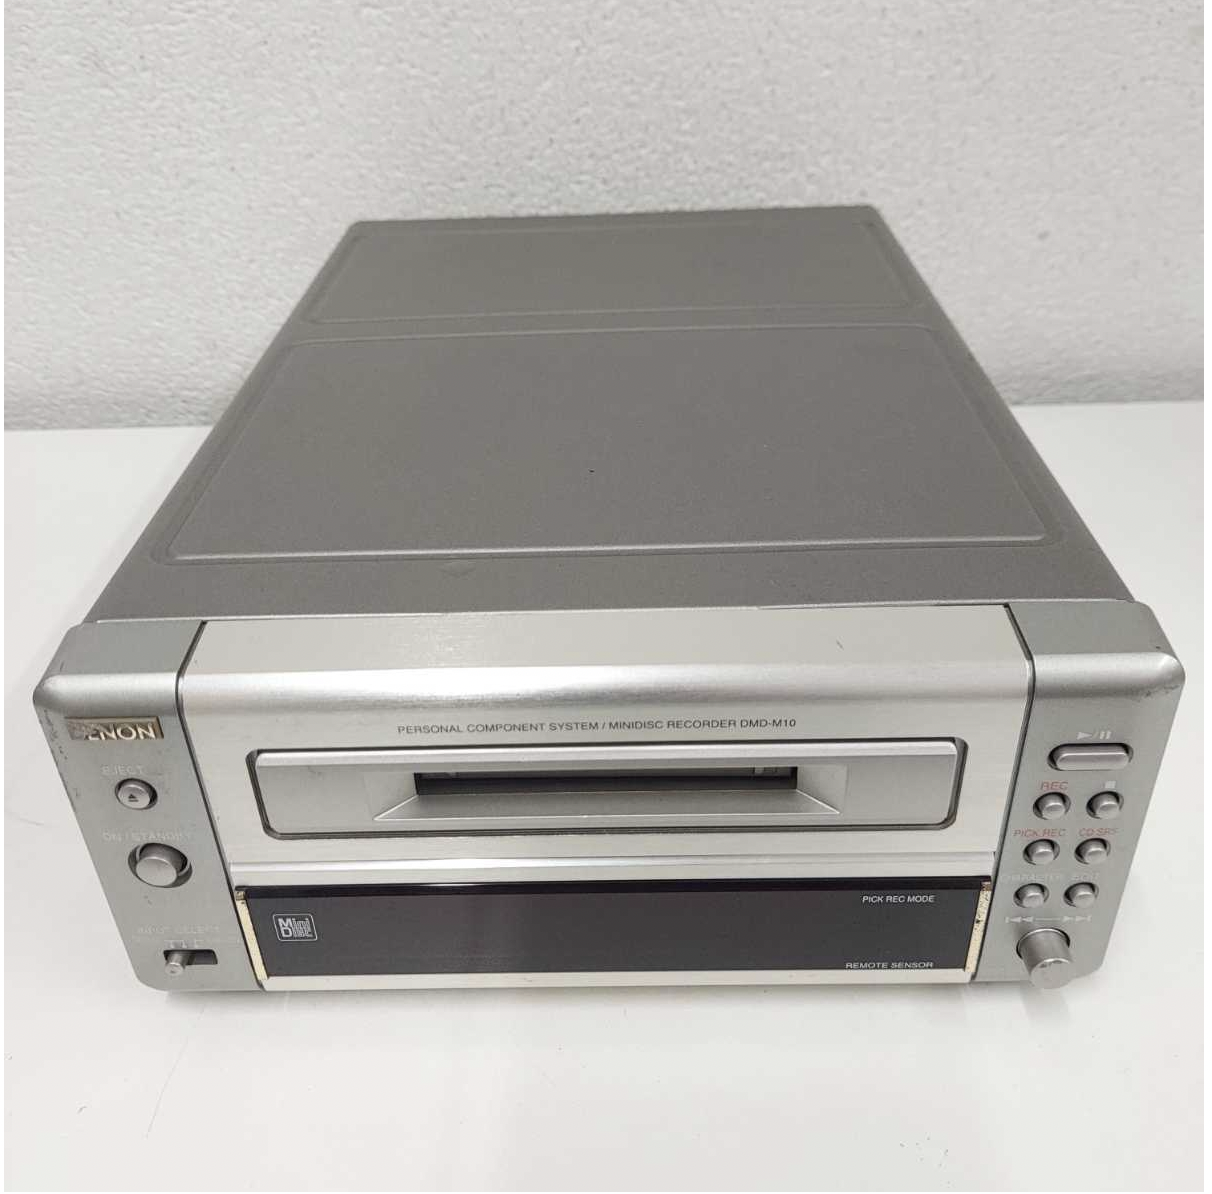 DENON DMD-M10 MD Deck From Japan Used